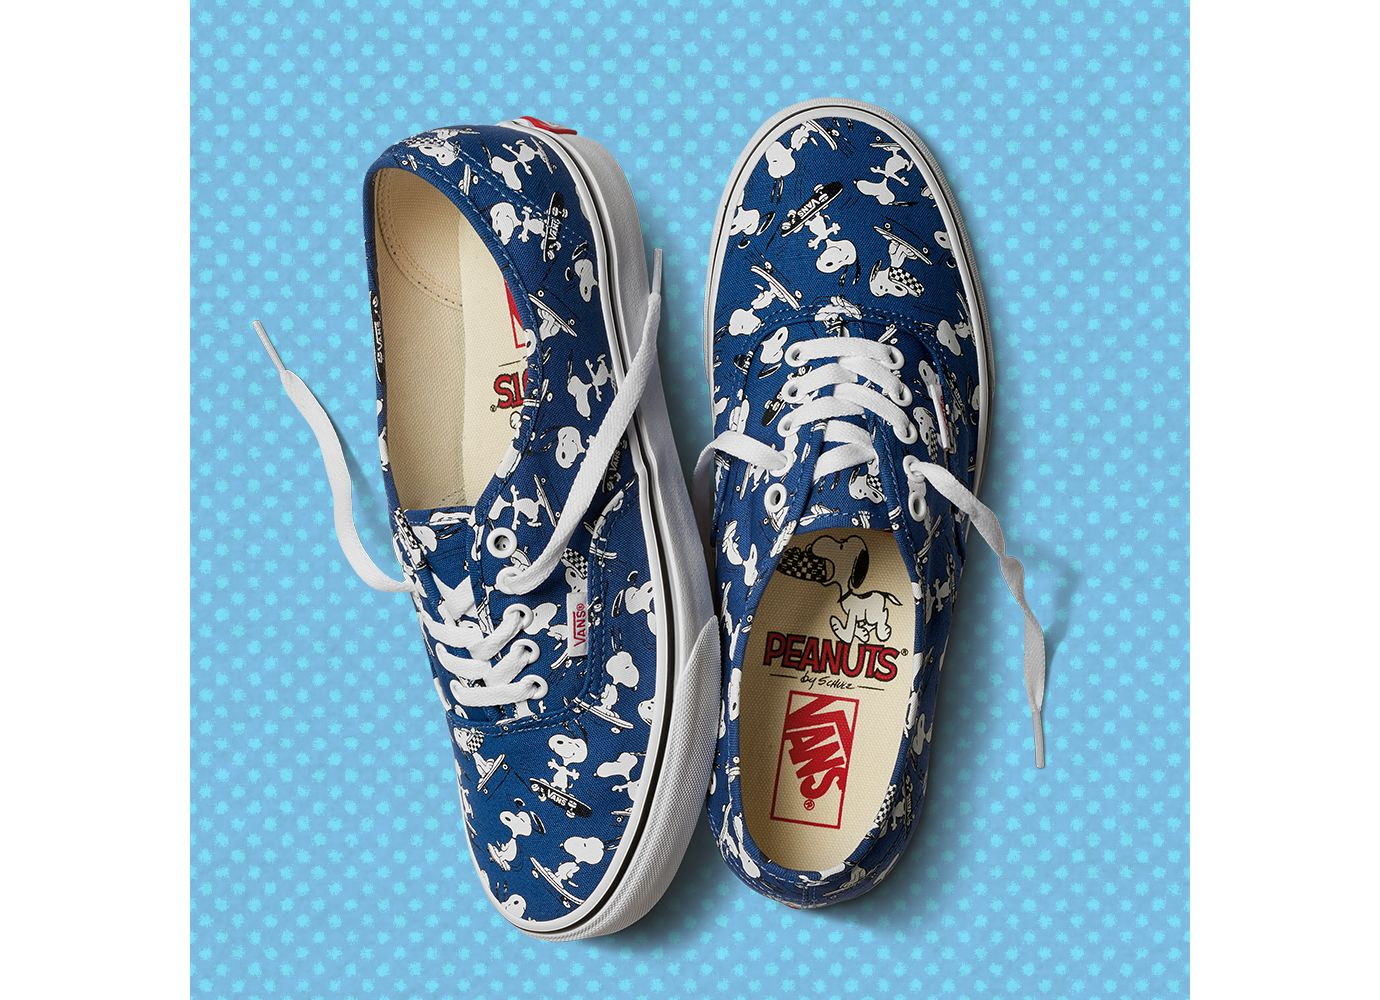 b710de2a23 The Vans x Peanuts Collection